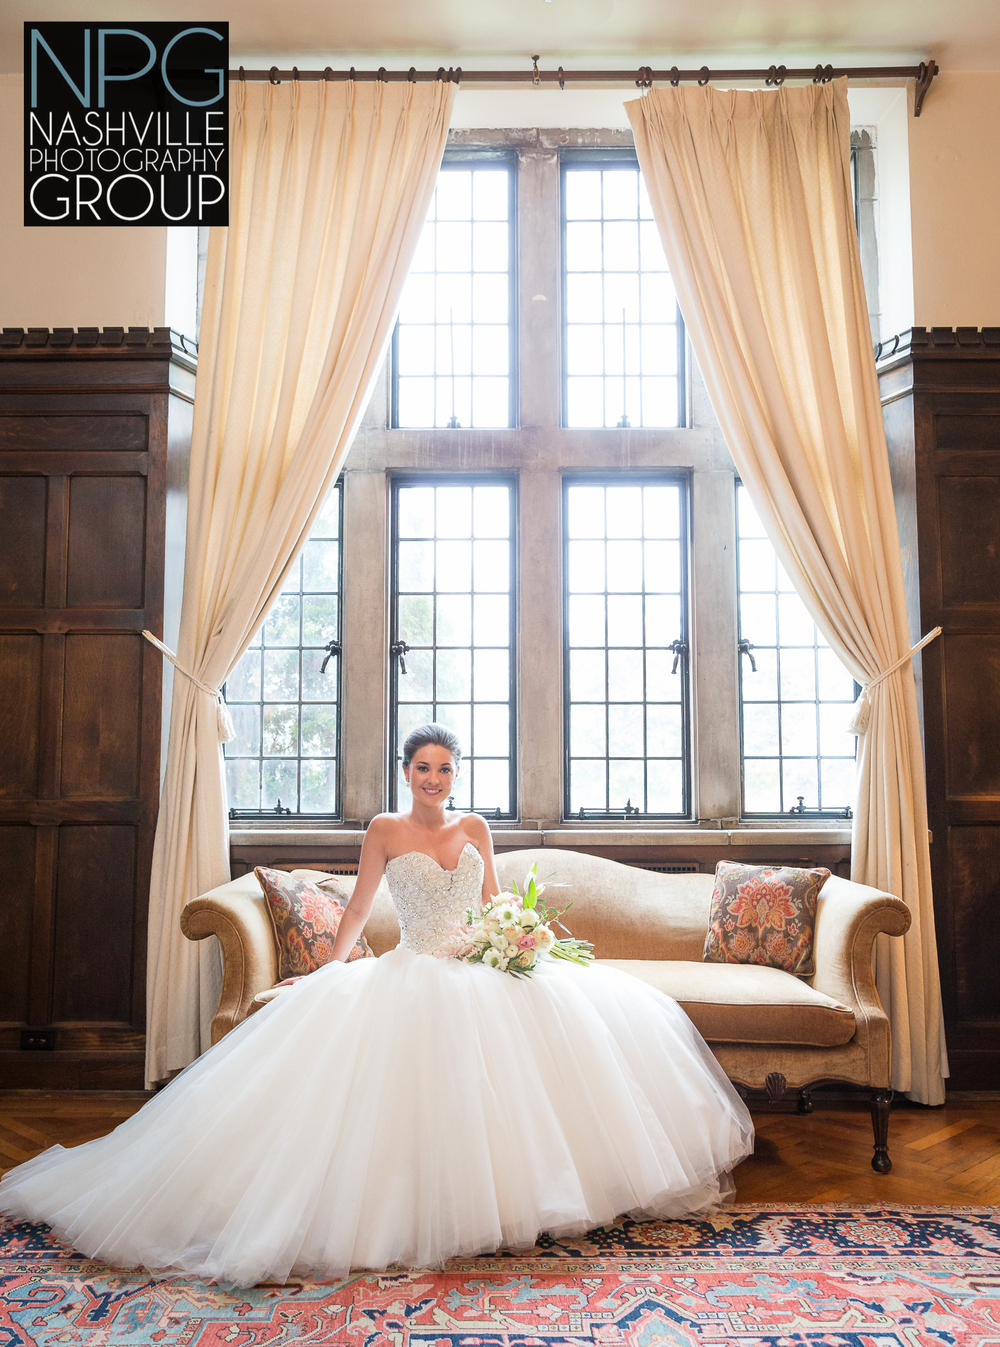 nashville wedding photographer - nashville photography group (2 of 11).jpg